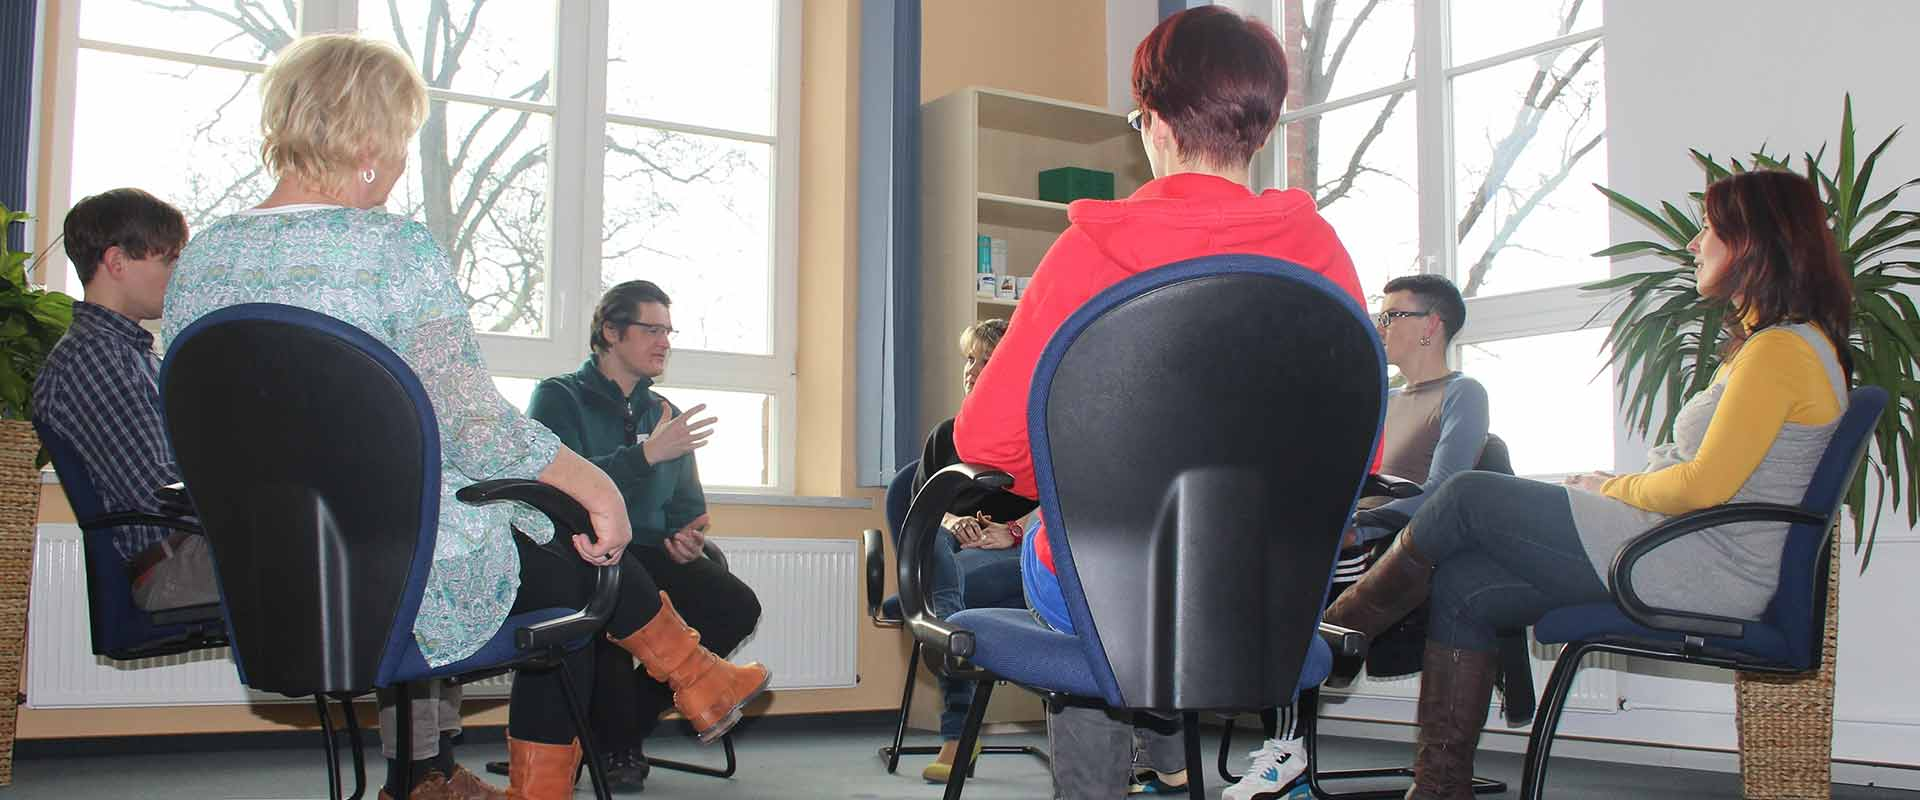 Gruppentherapie in der MEDIAN Klinik Römhild